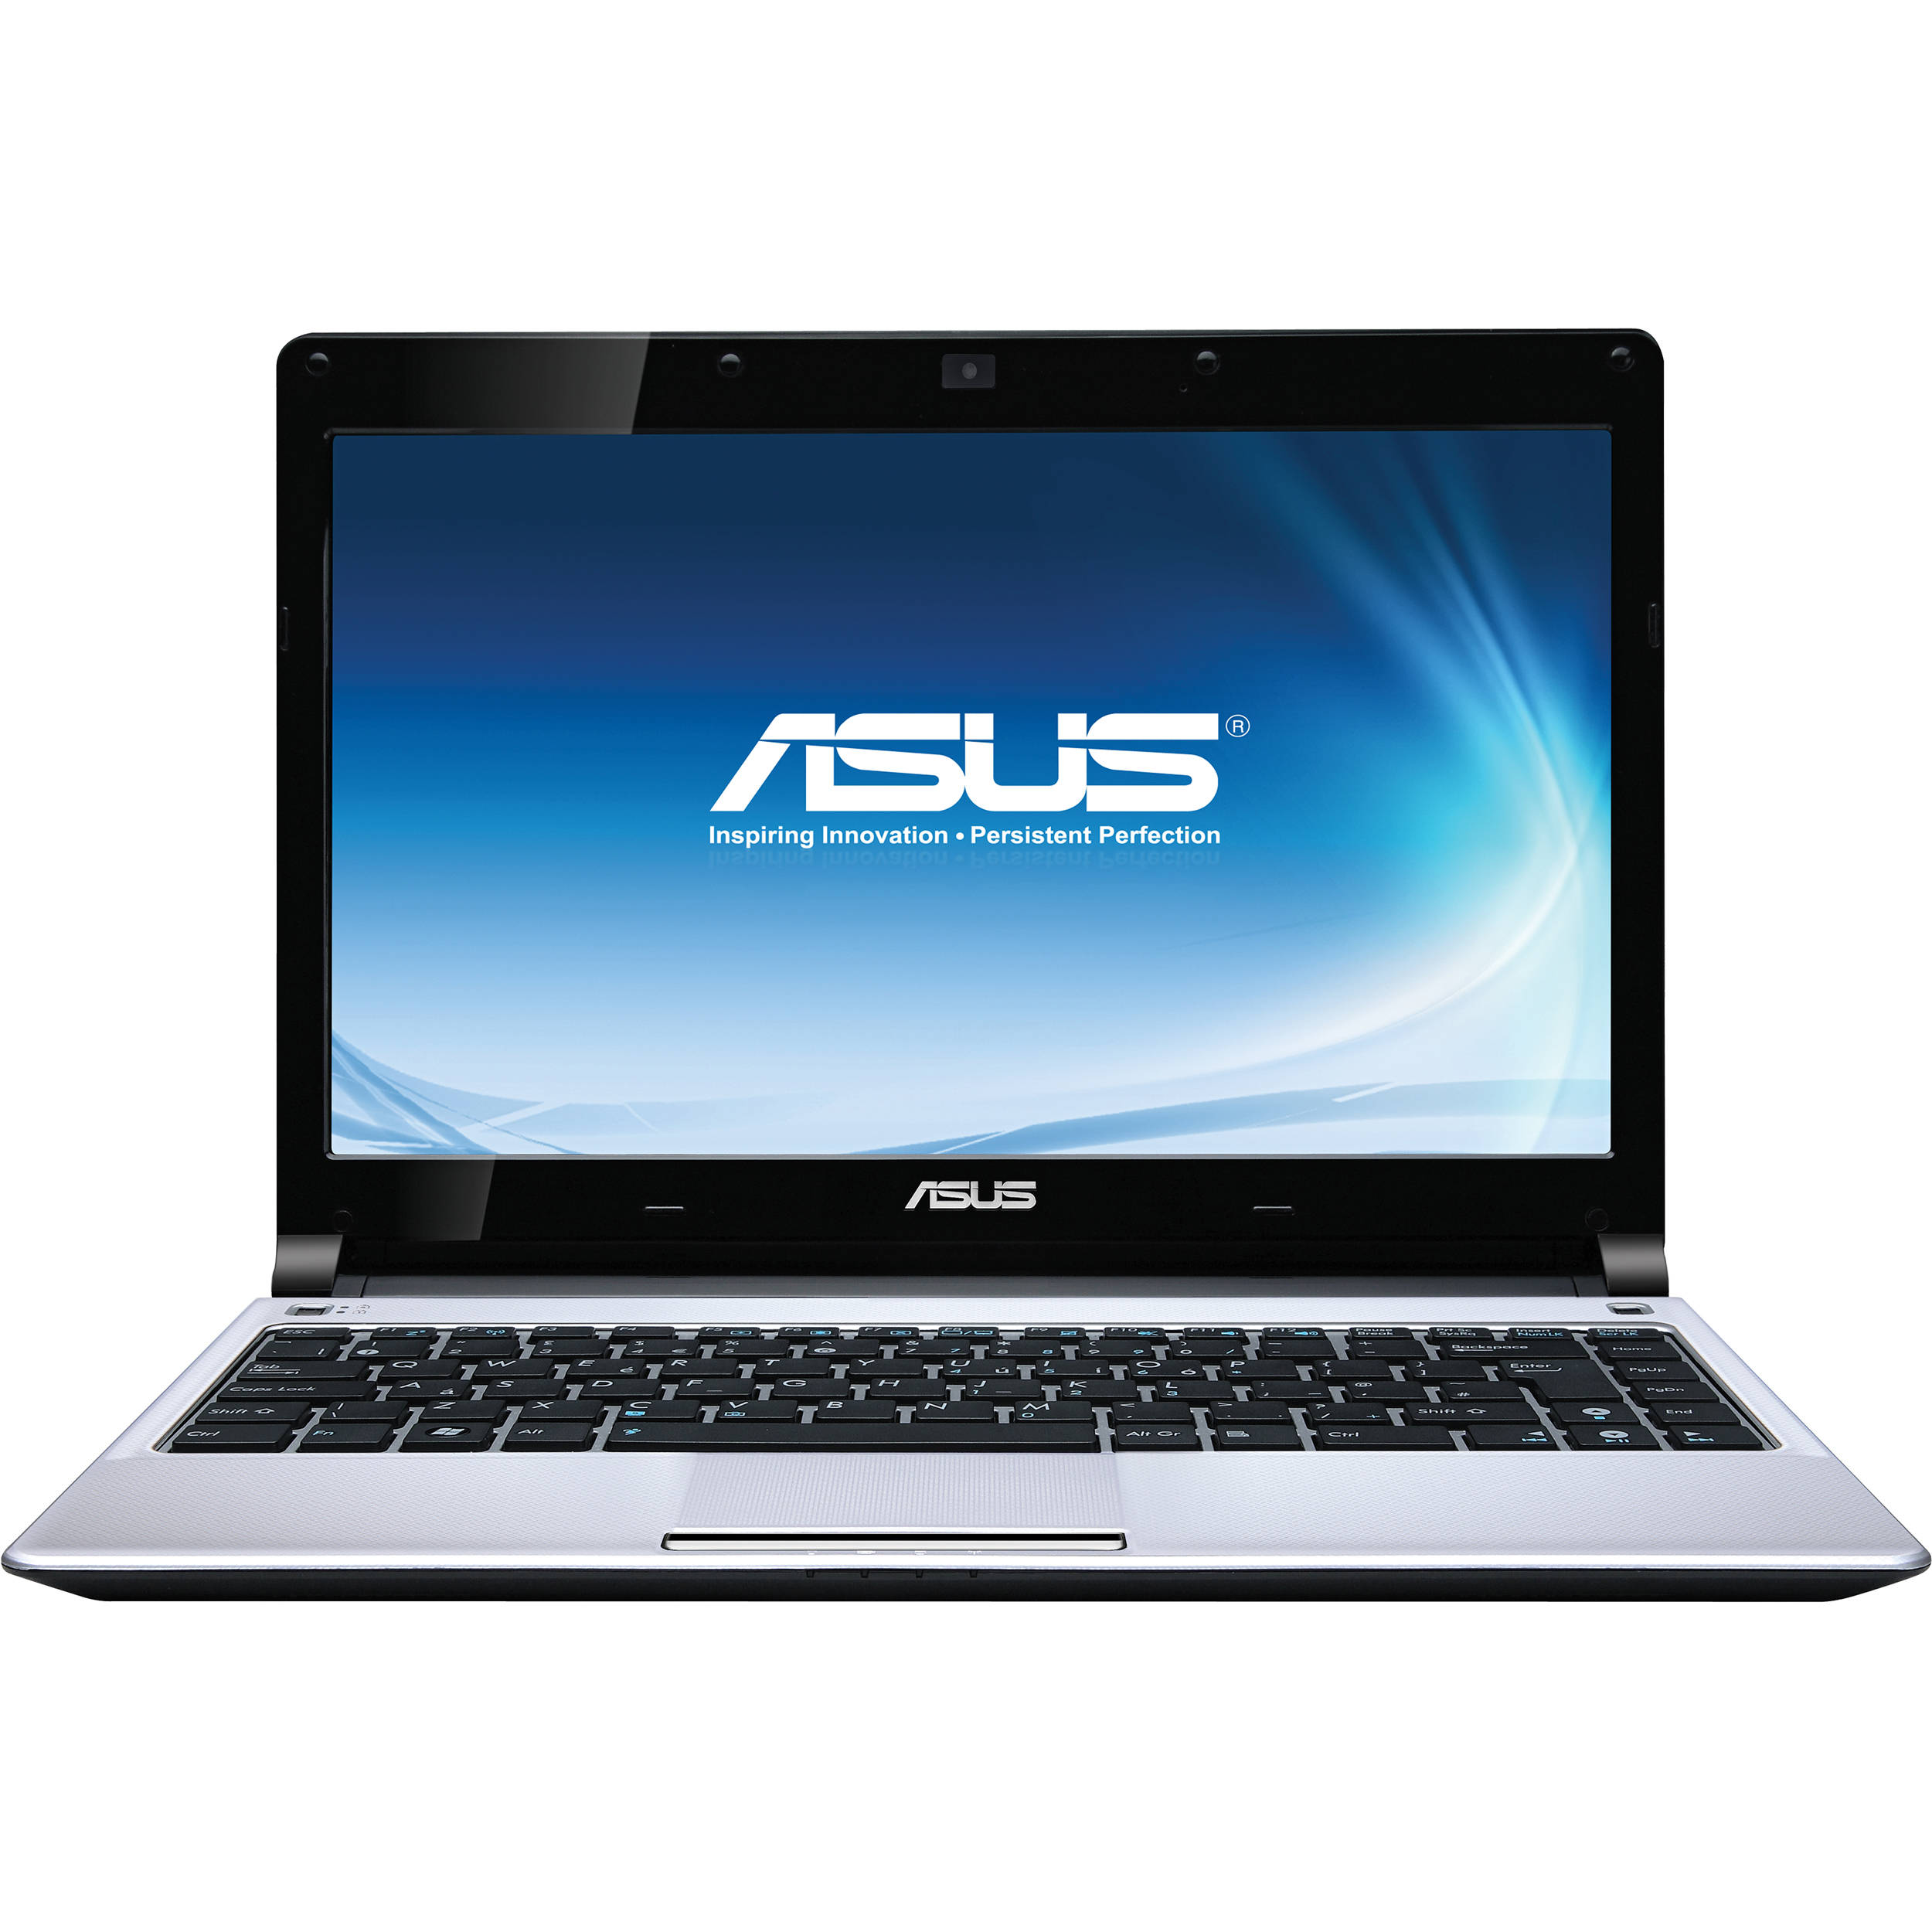 Asus U35JC Management Windows 8 X64 Driver Download